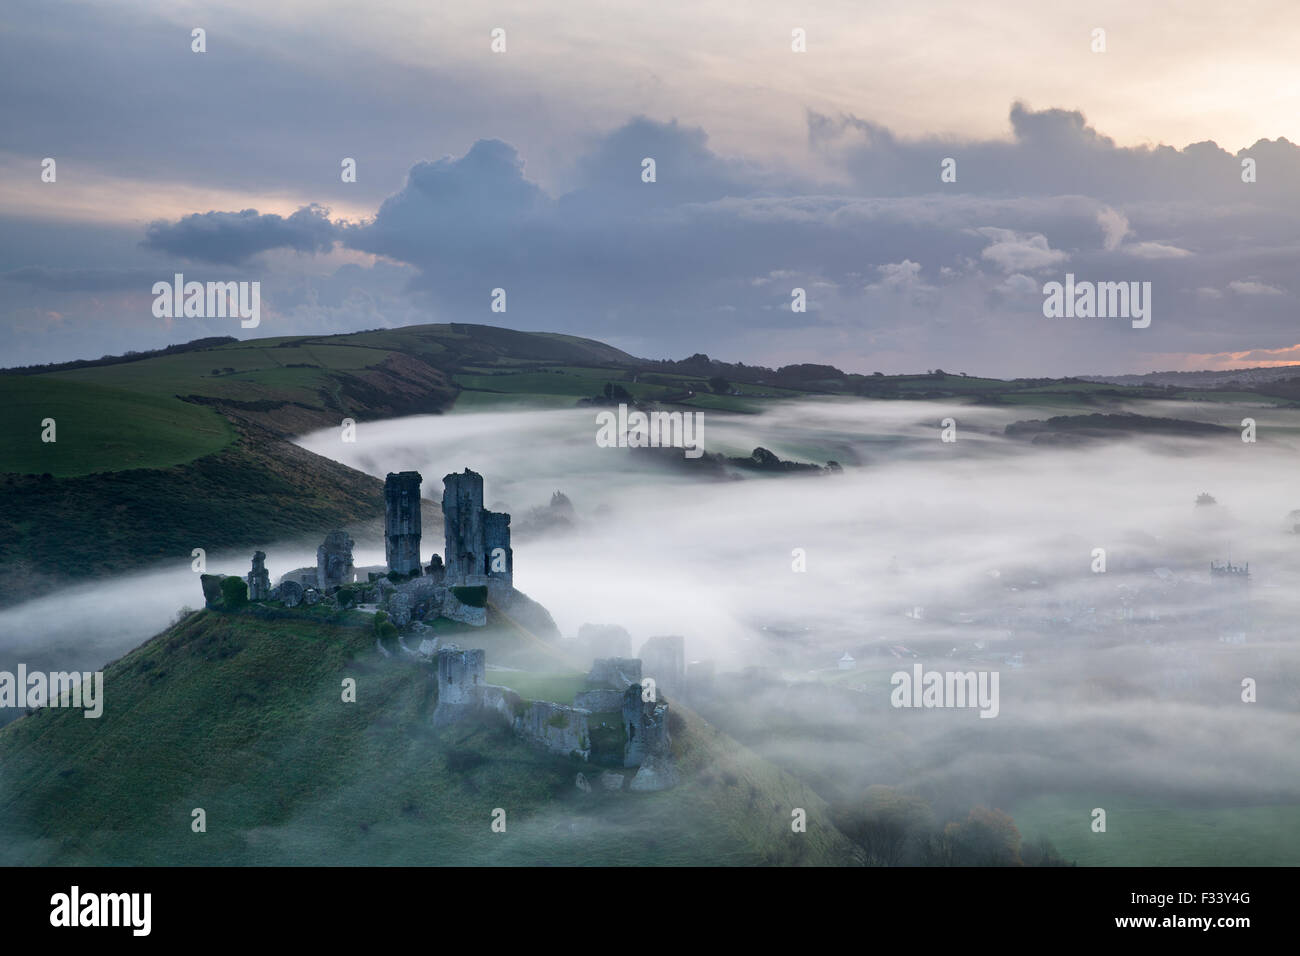 Corfe Castle in the mist at dawn, Dorset, England - Stock Image